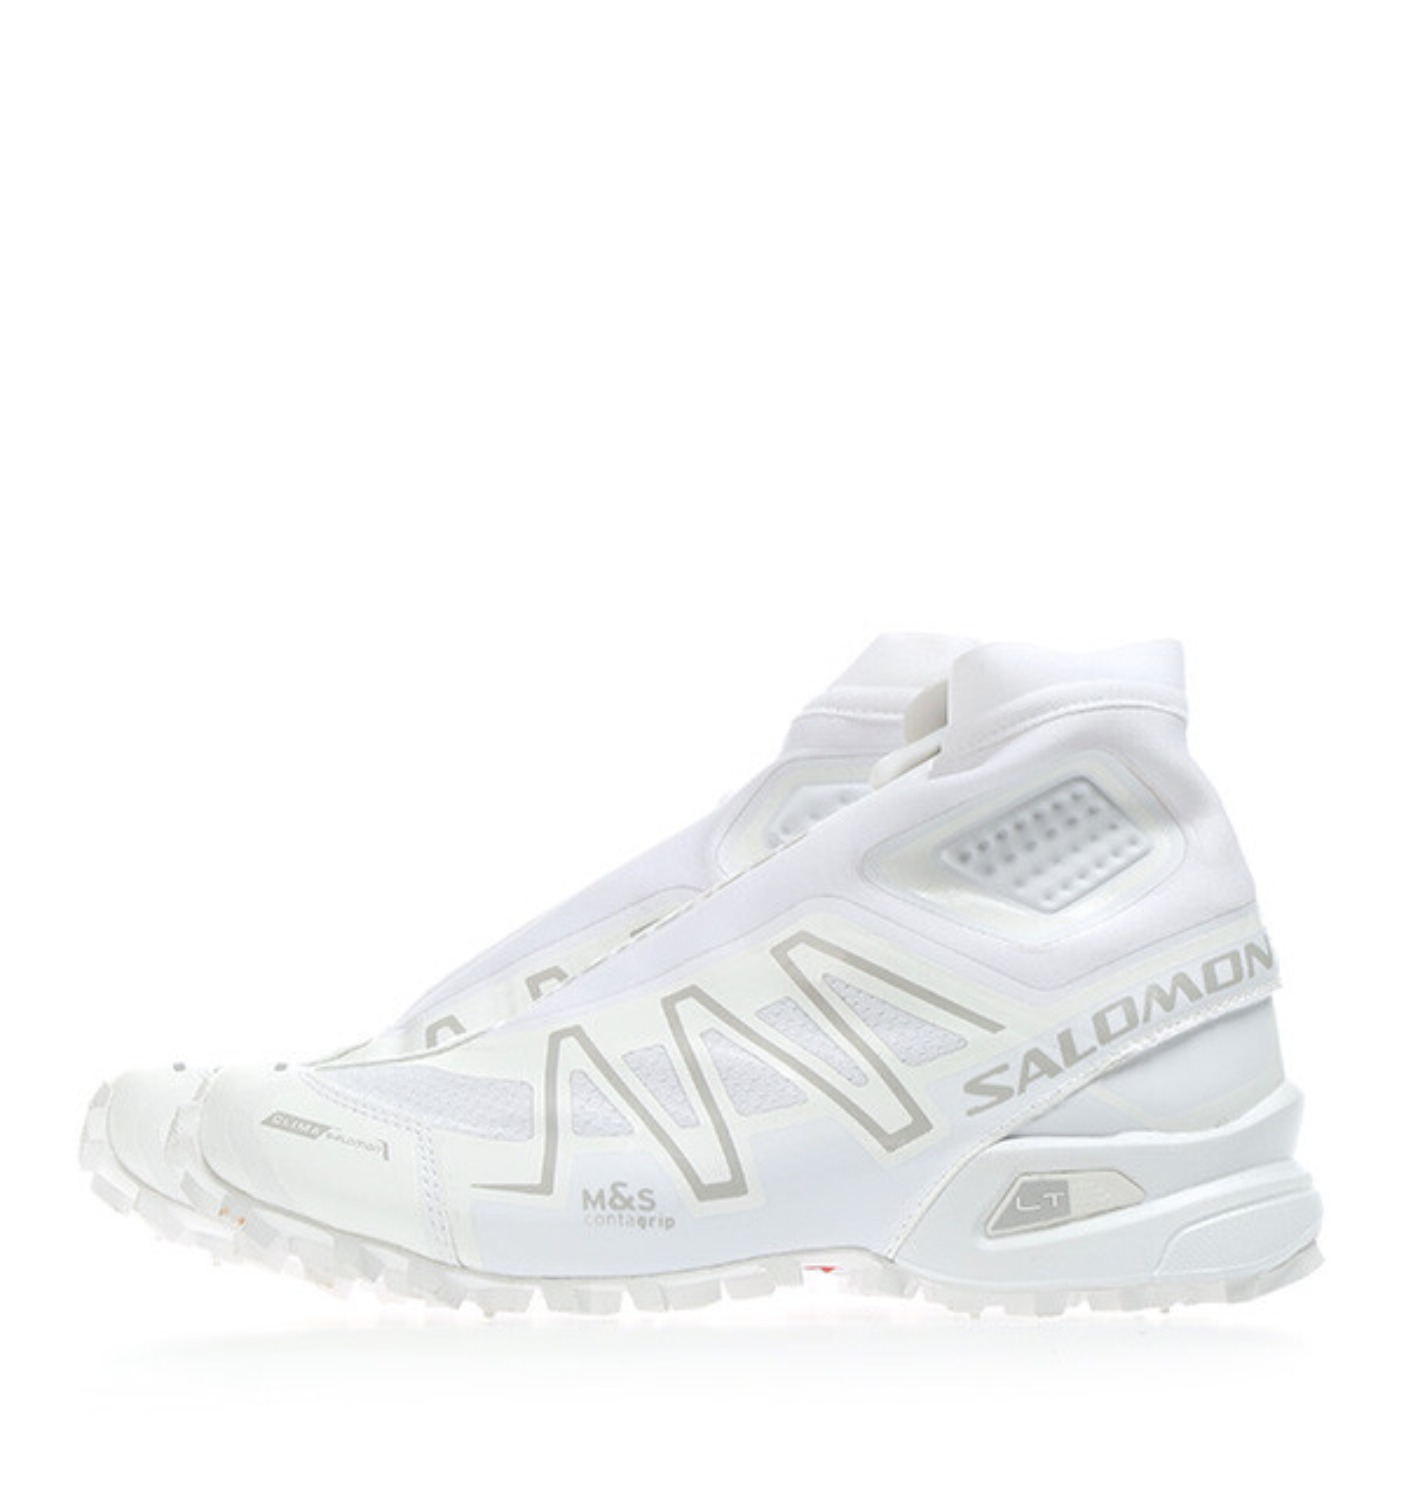 SNOWCROSS ADV LTD WHITE